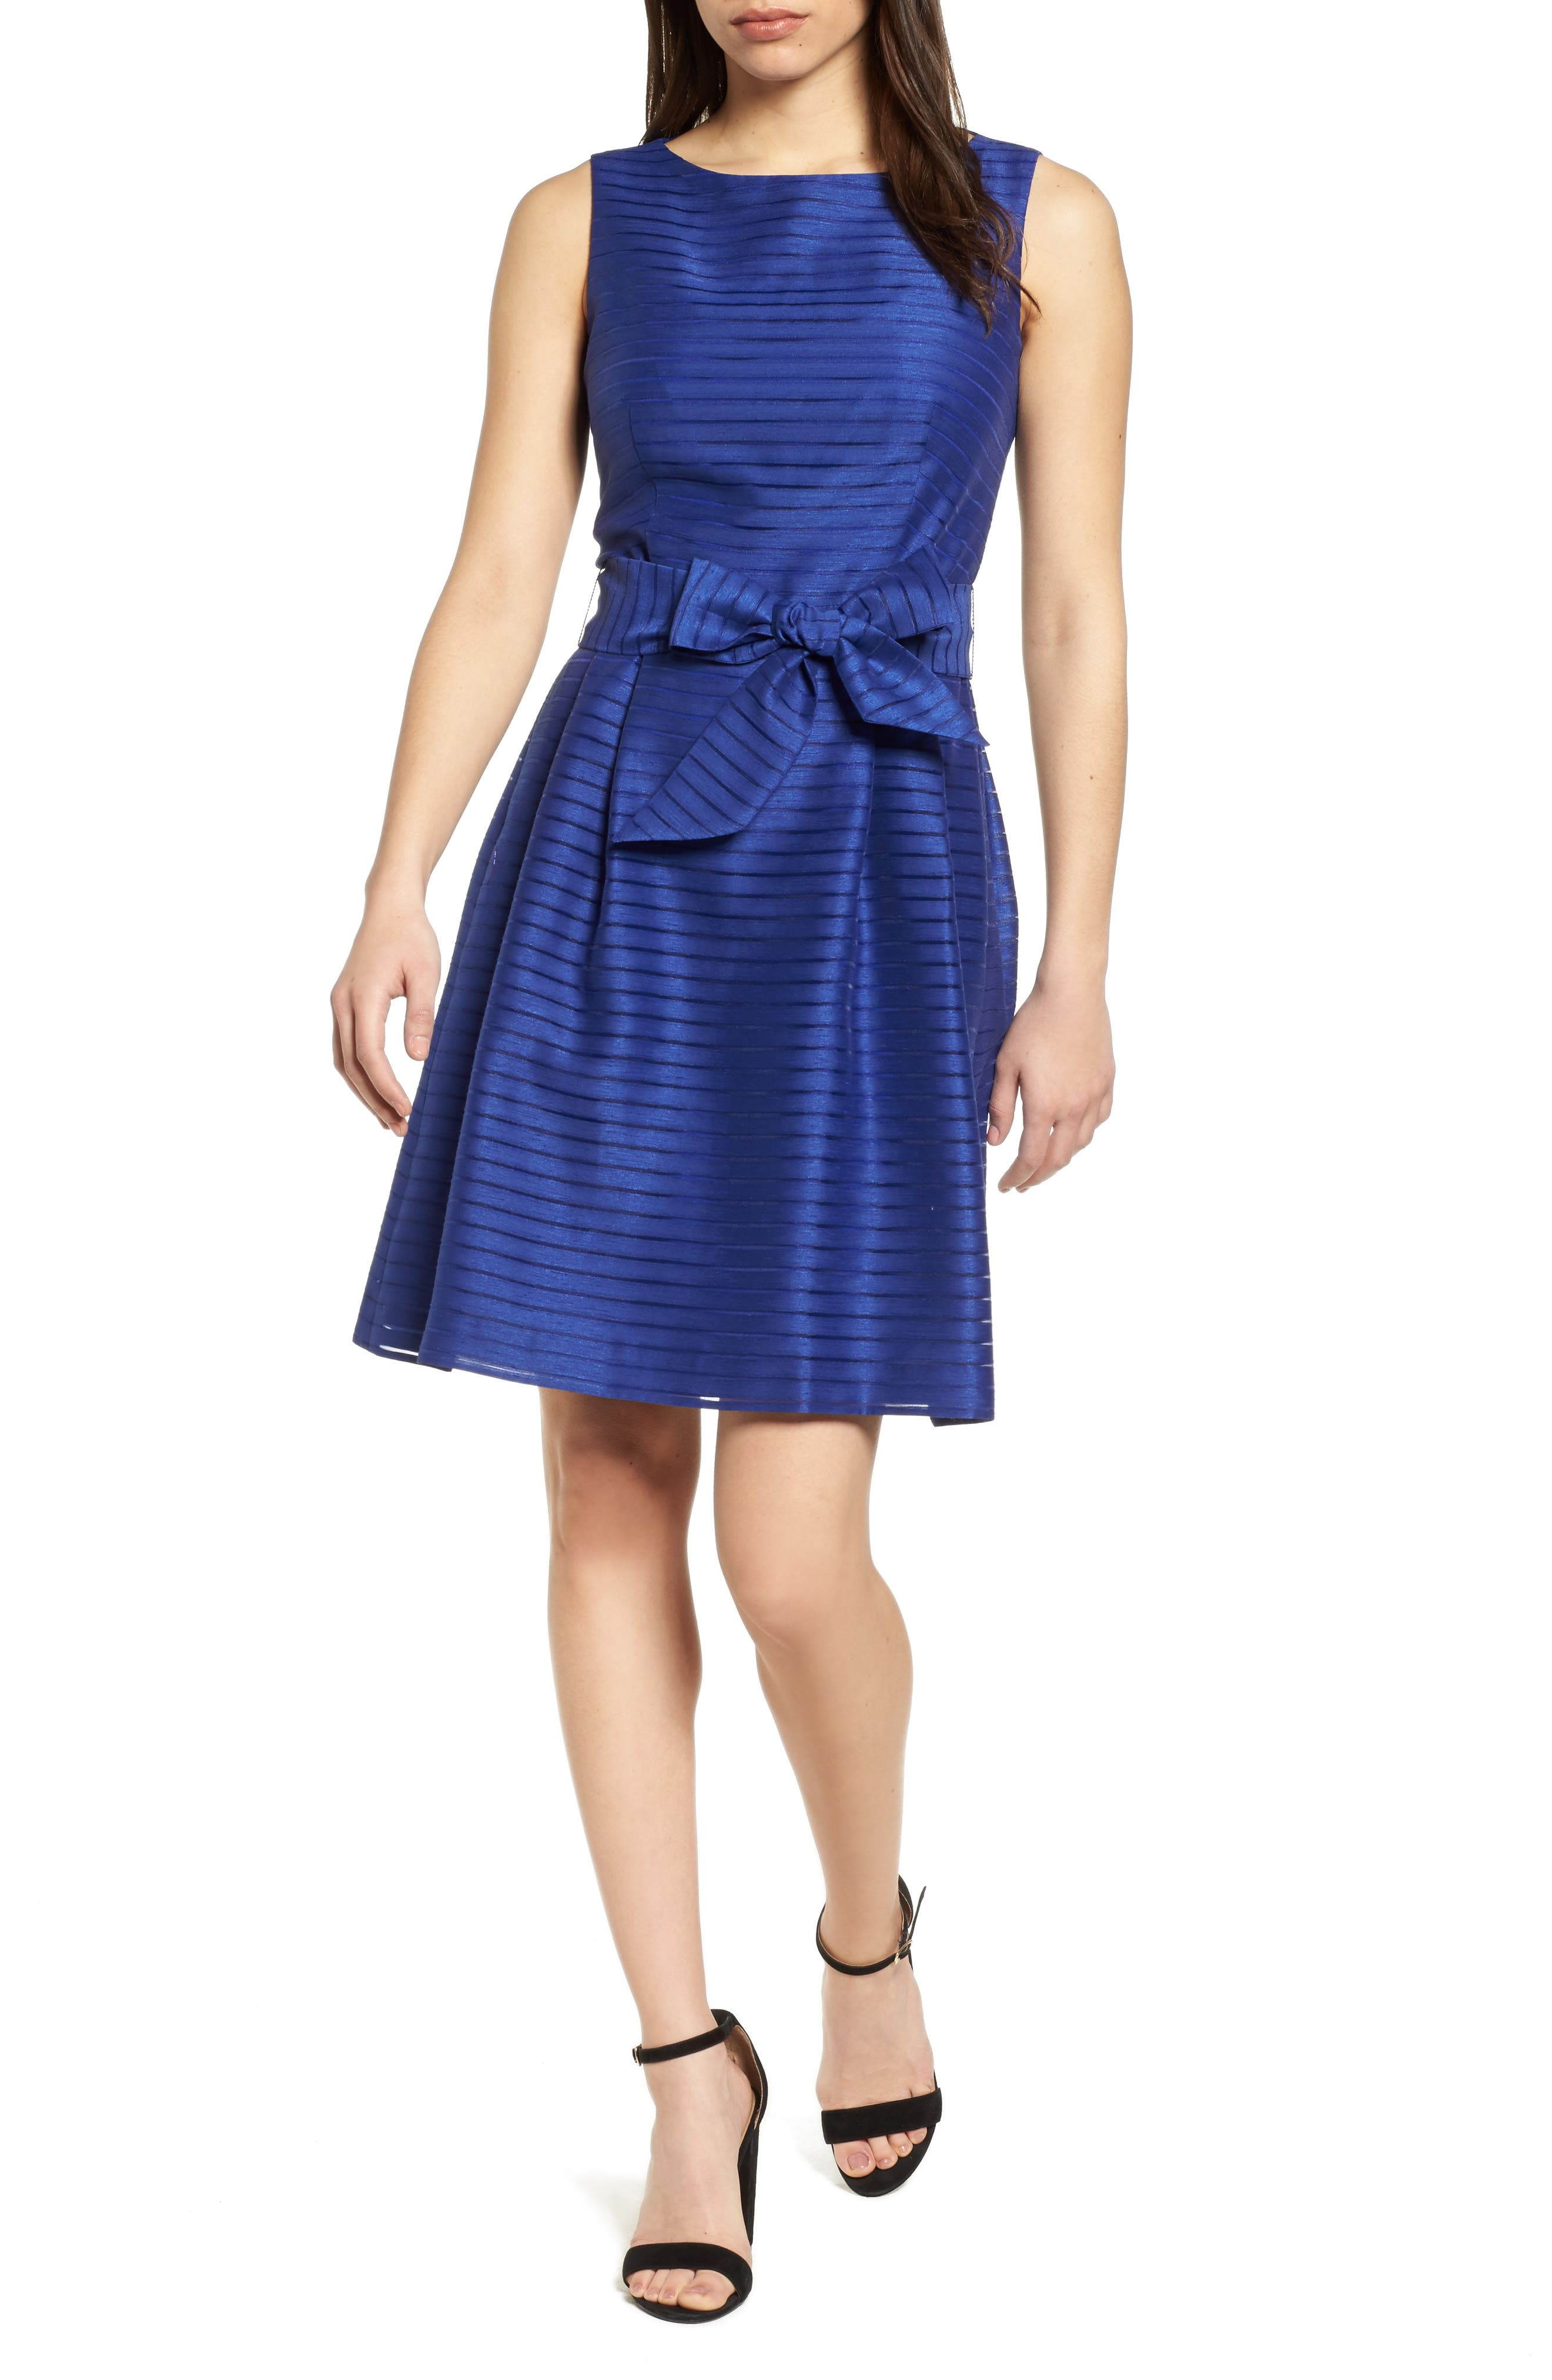 ANNE KLEIN,                             Shadow Stripe Fit & Flare Dress,                             Main thumbnail 1, color,                             430